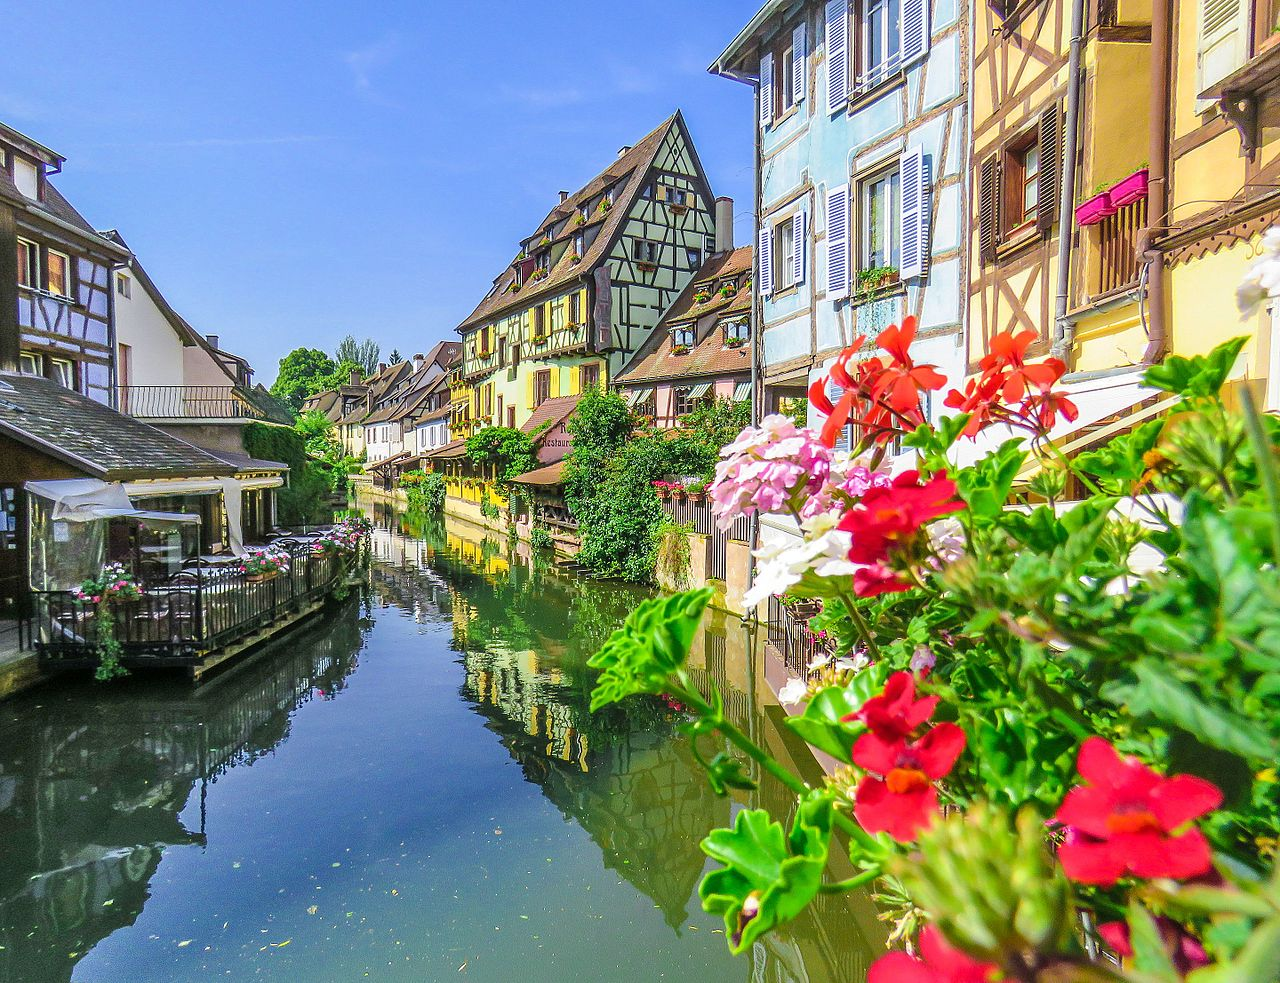 The little Venice, Colmar